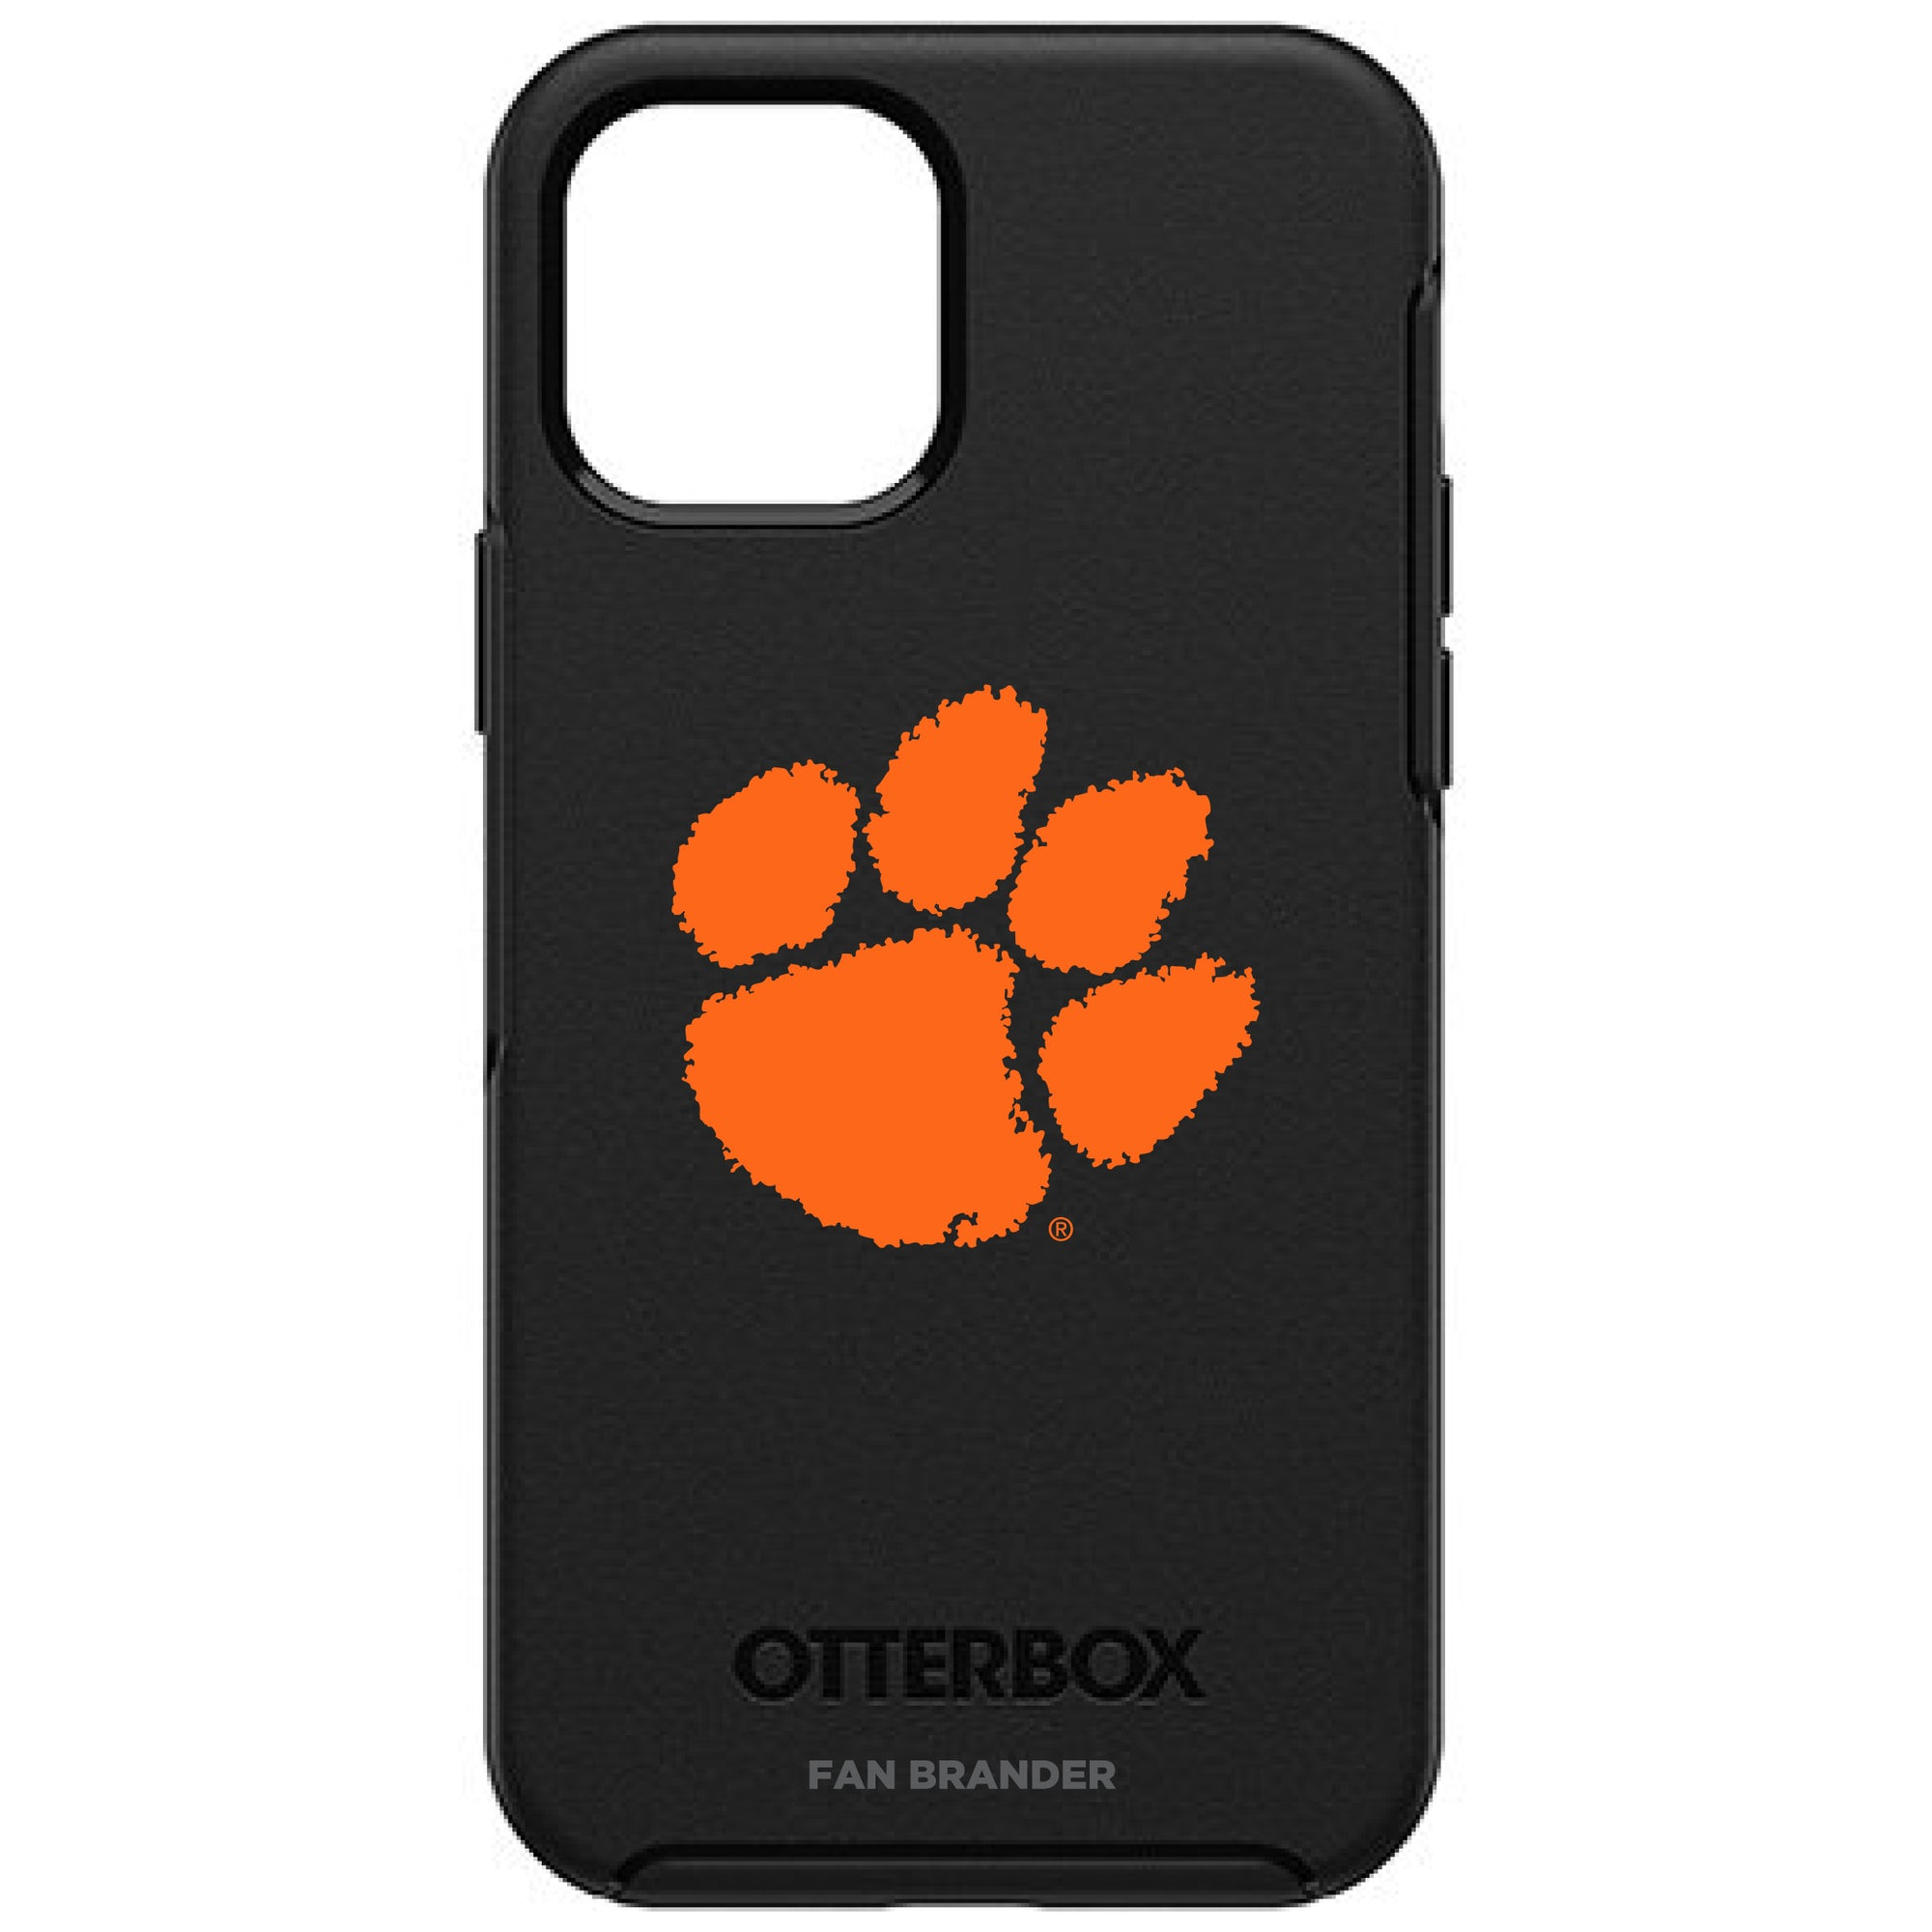 Clemson Tigers Otterbox iPhone 12 Pro Max Symmetry Case